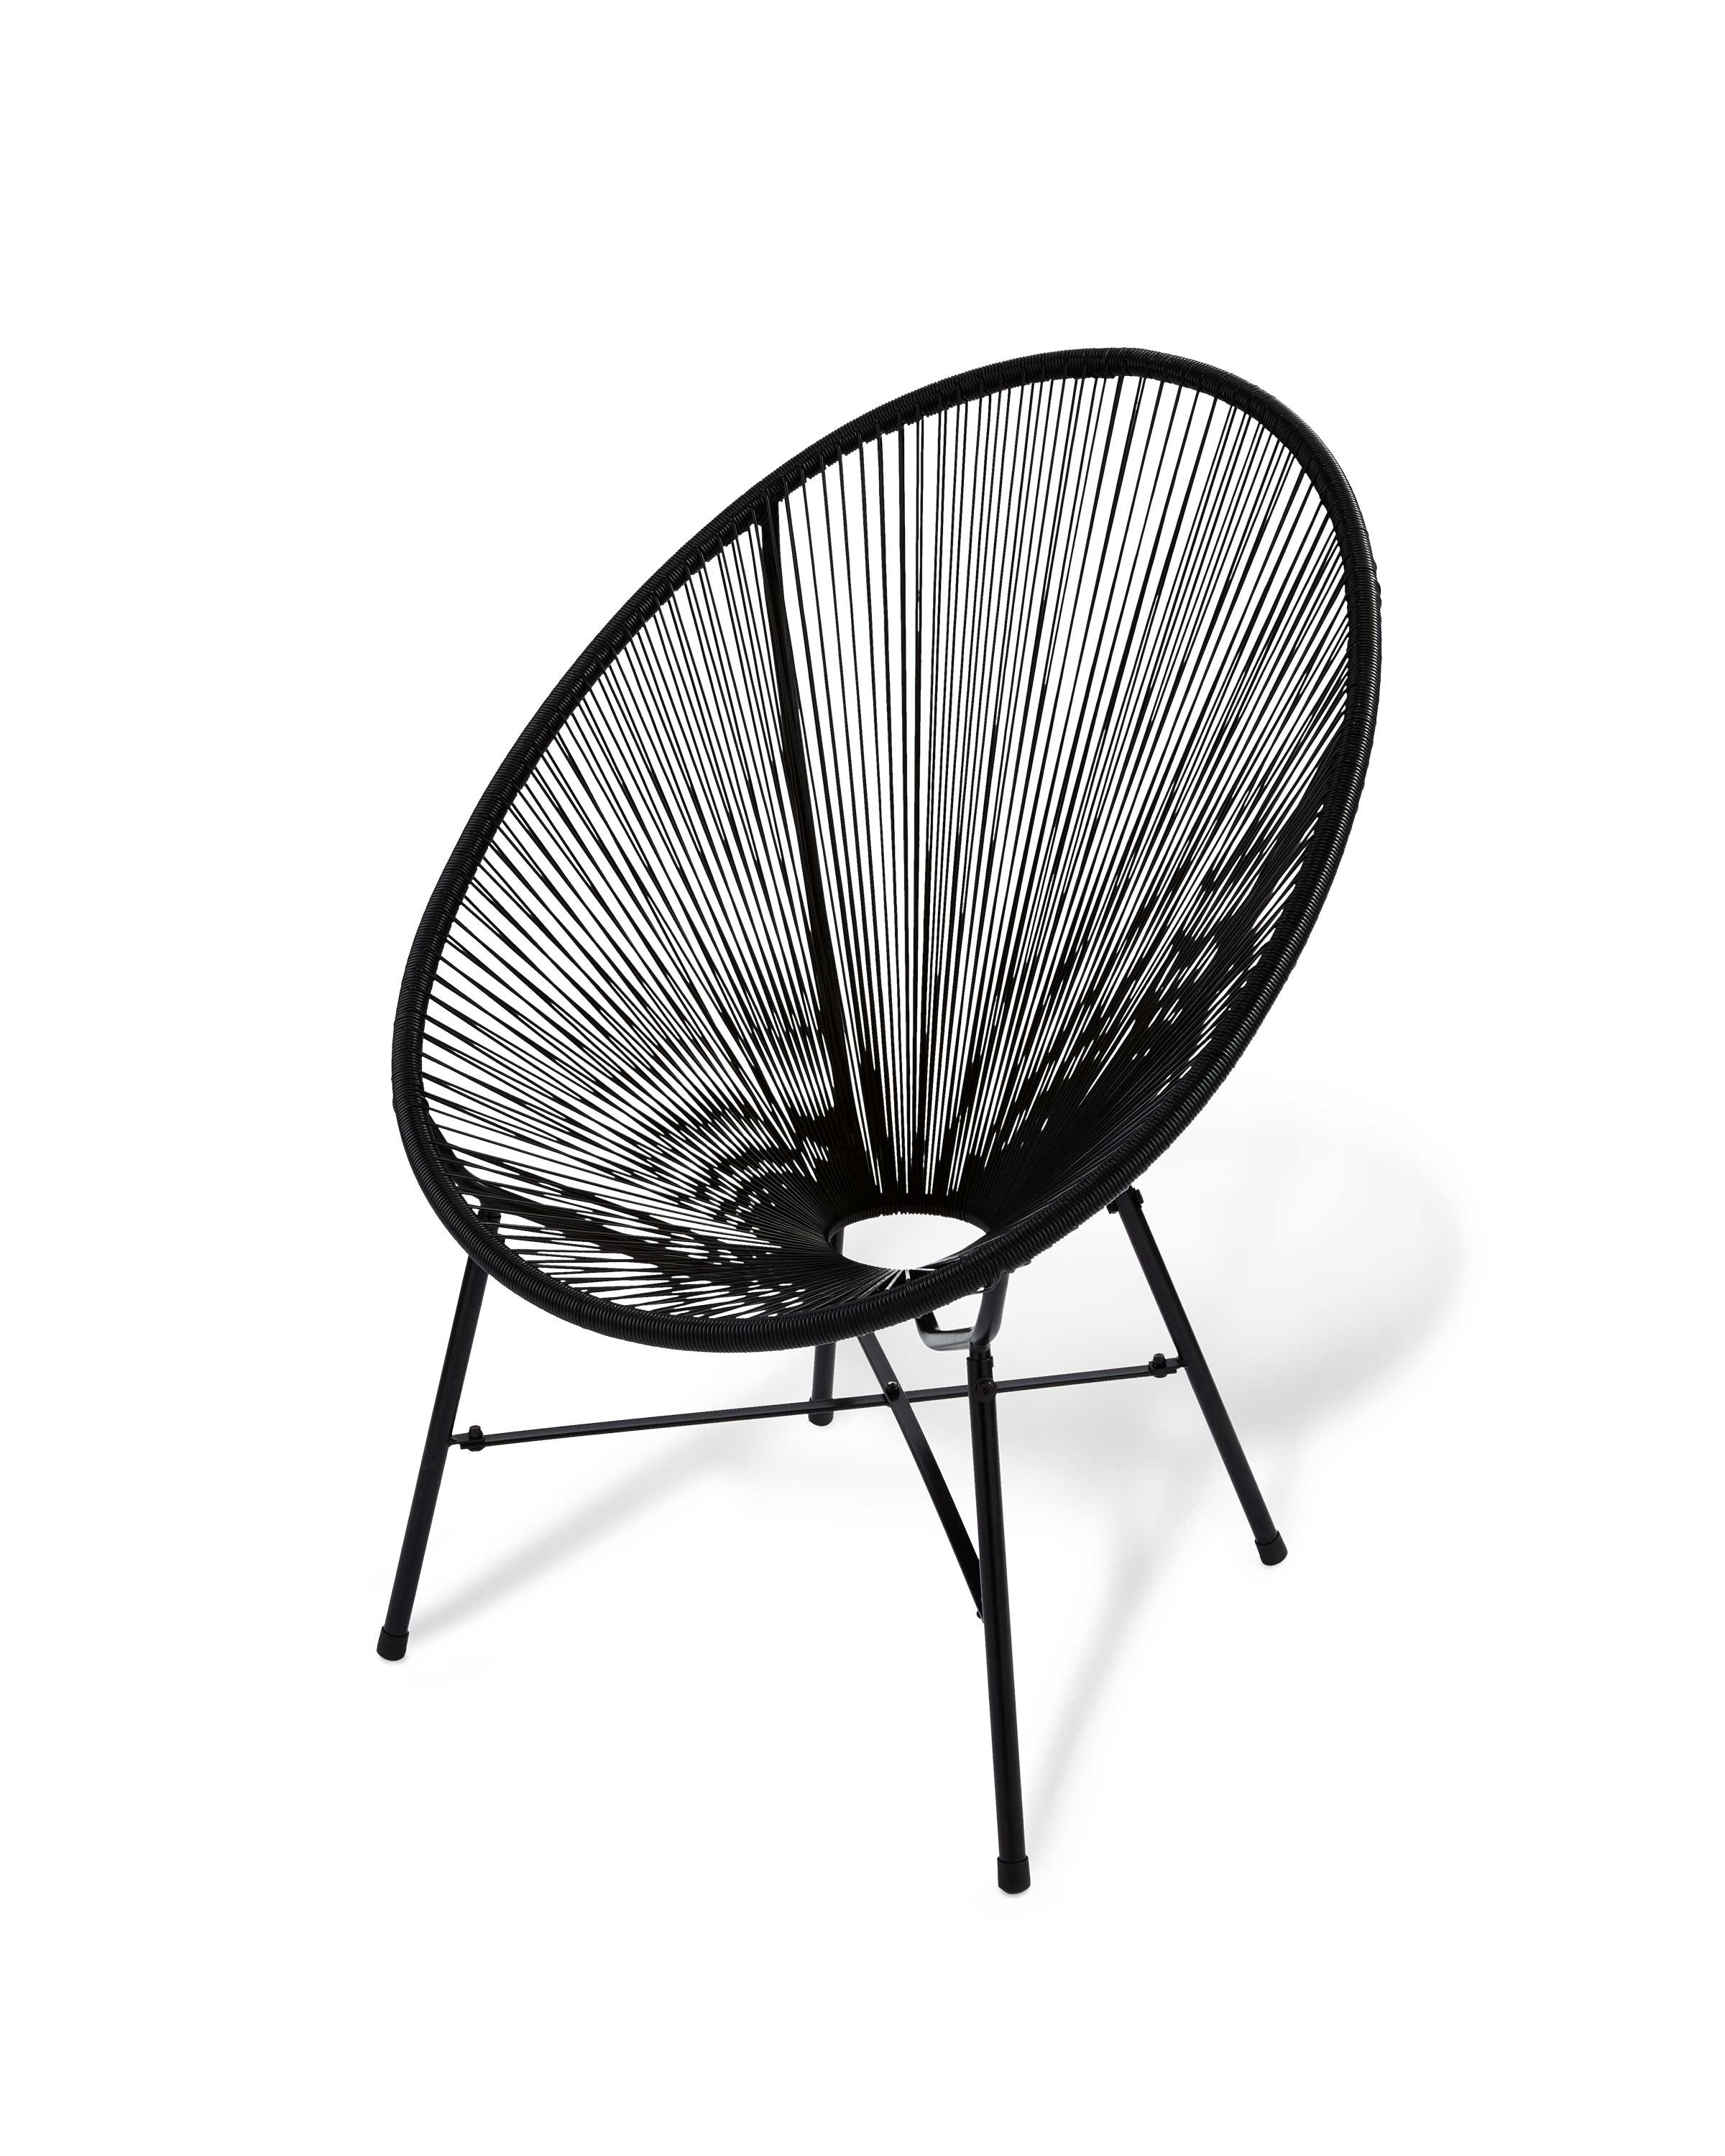 Wondrous Black Garden String Chair Gmtry Best Dining Table And Chair Ideas Images Gmtryco